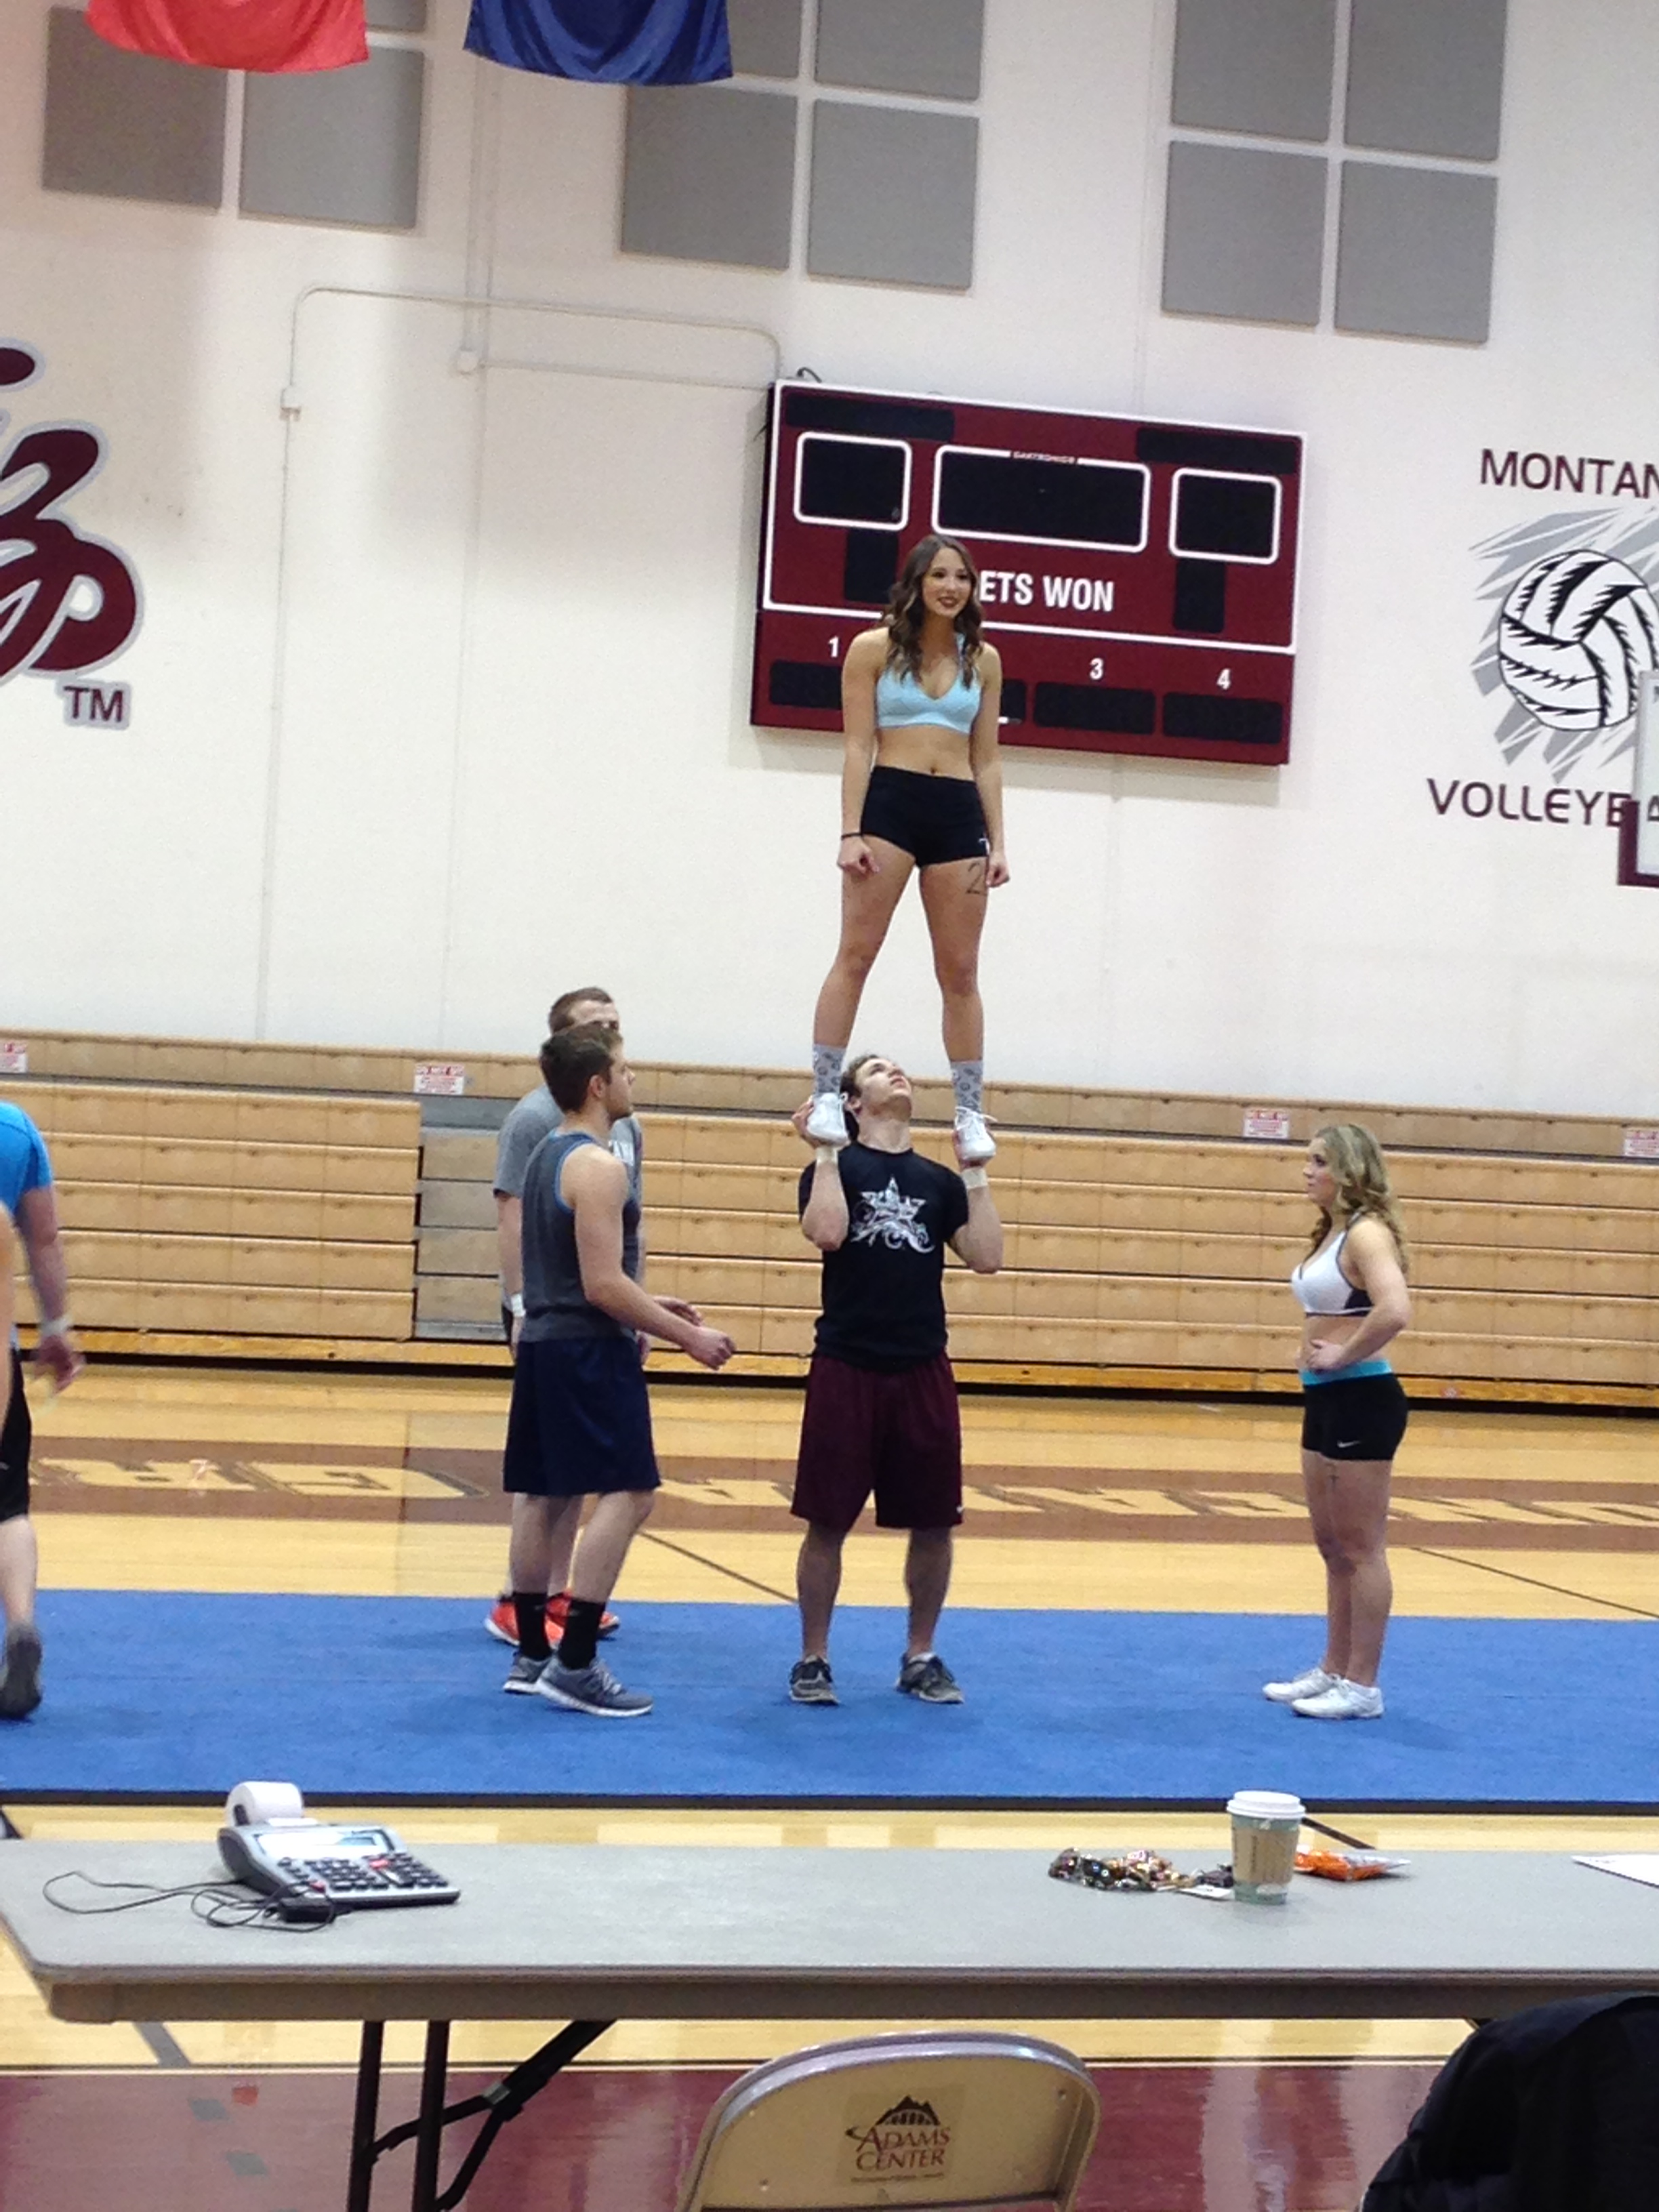 I made it a priority to catch some of the UM Cheer Squad tryouts today.